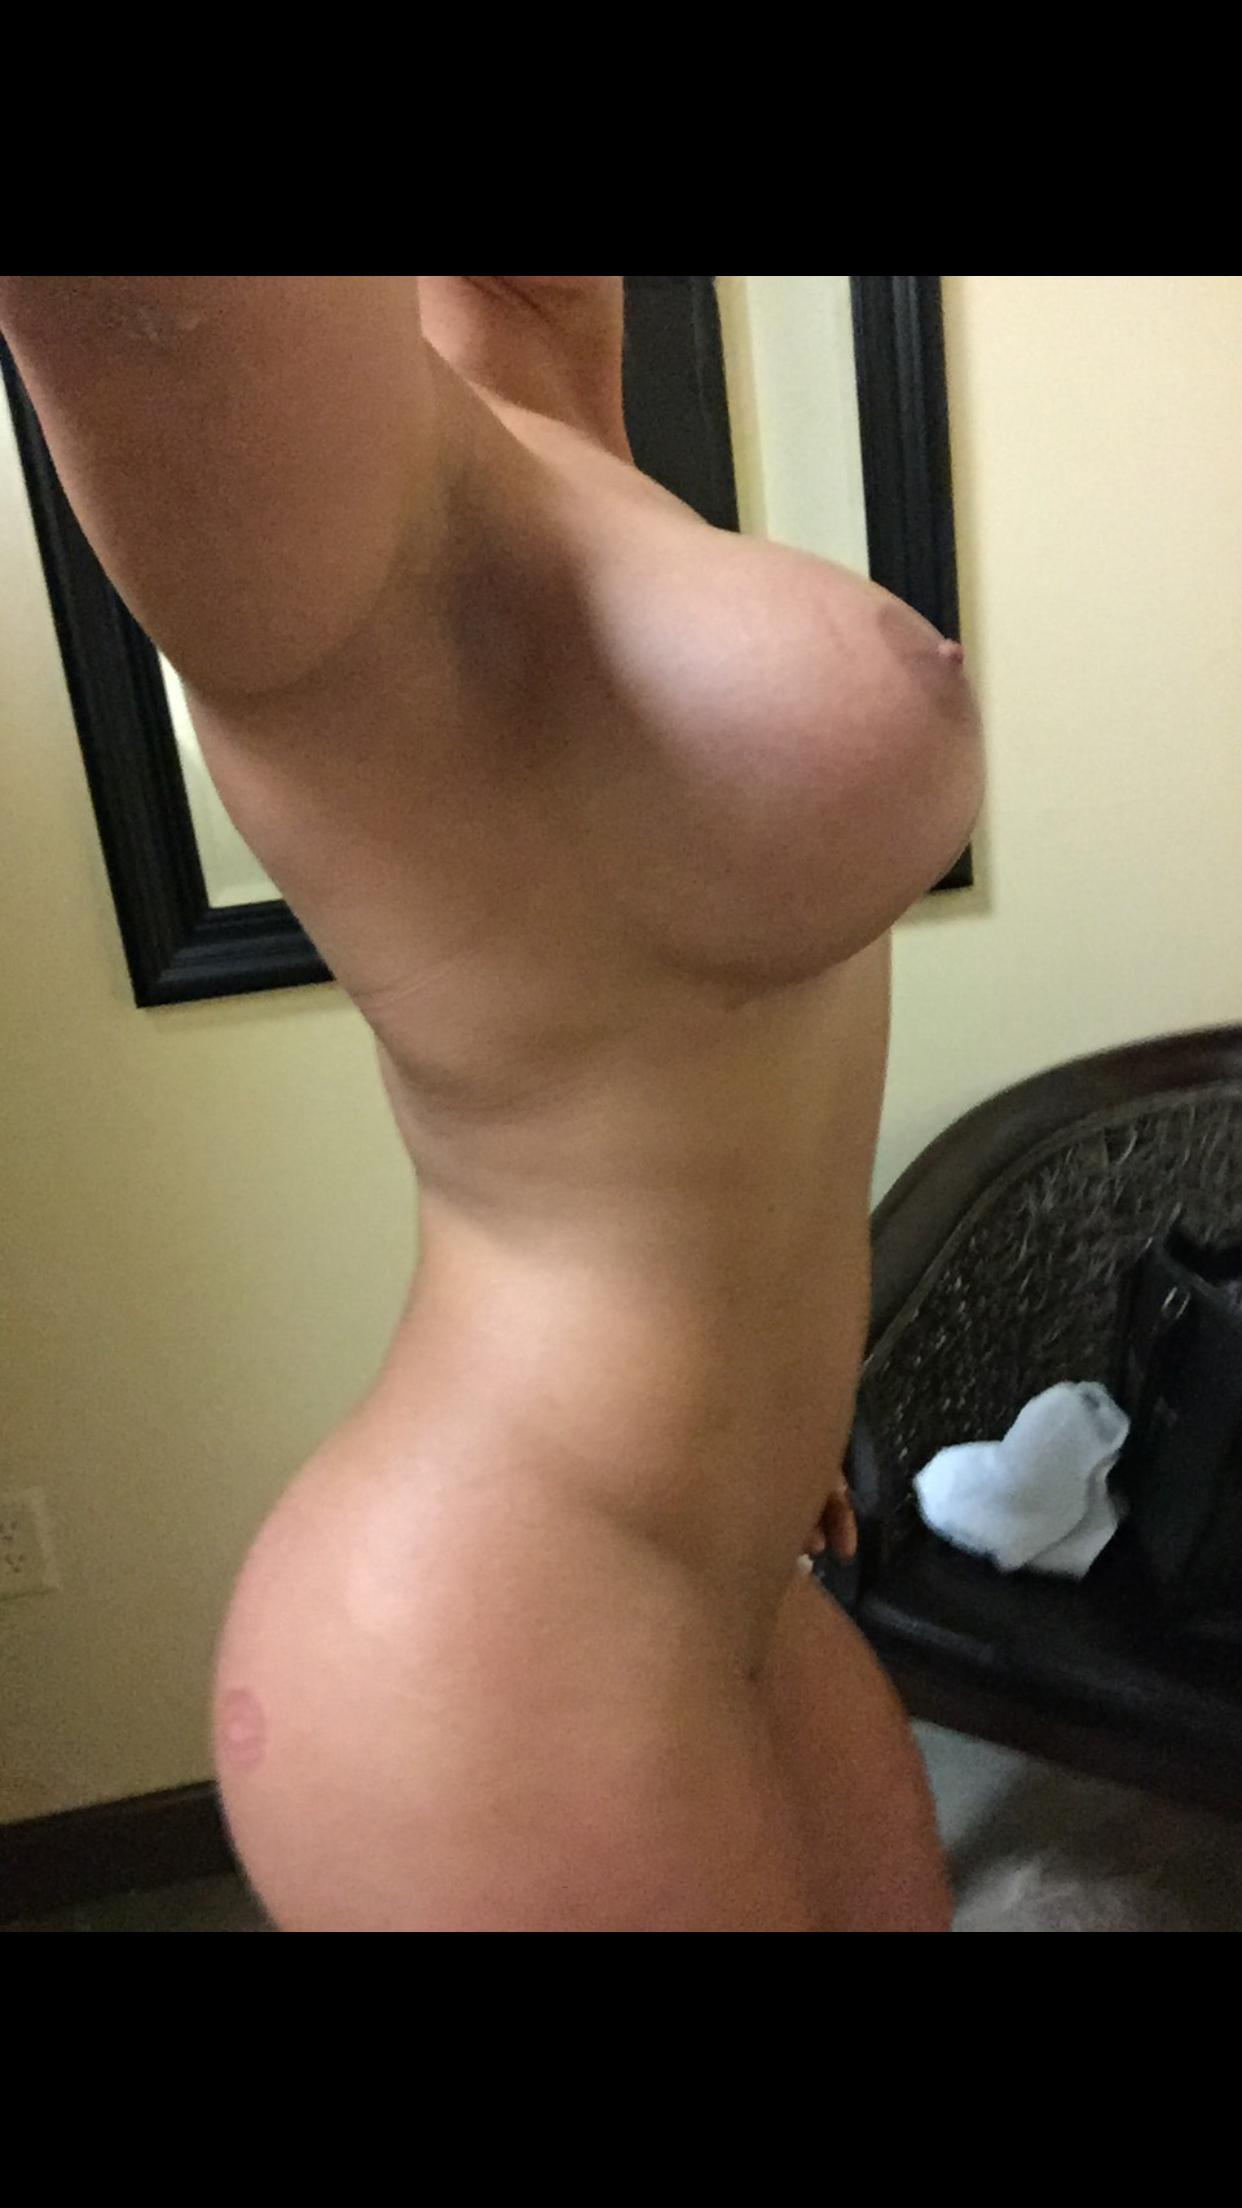 Girls who love small cock